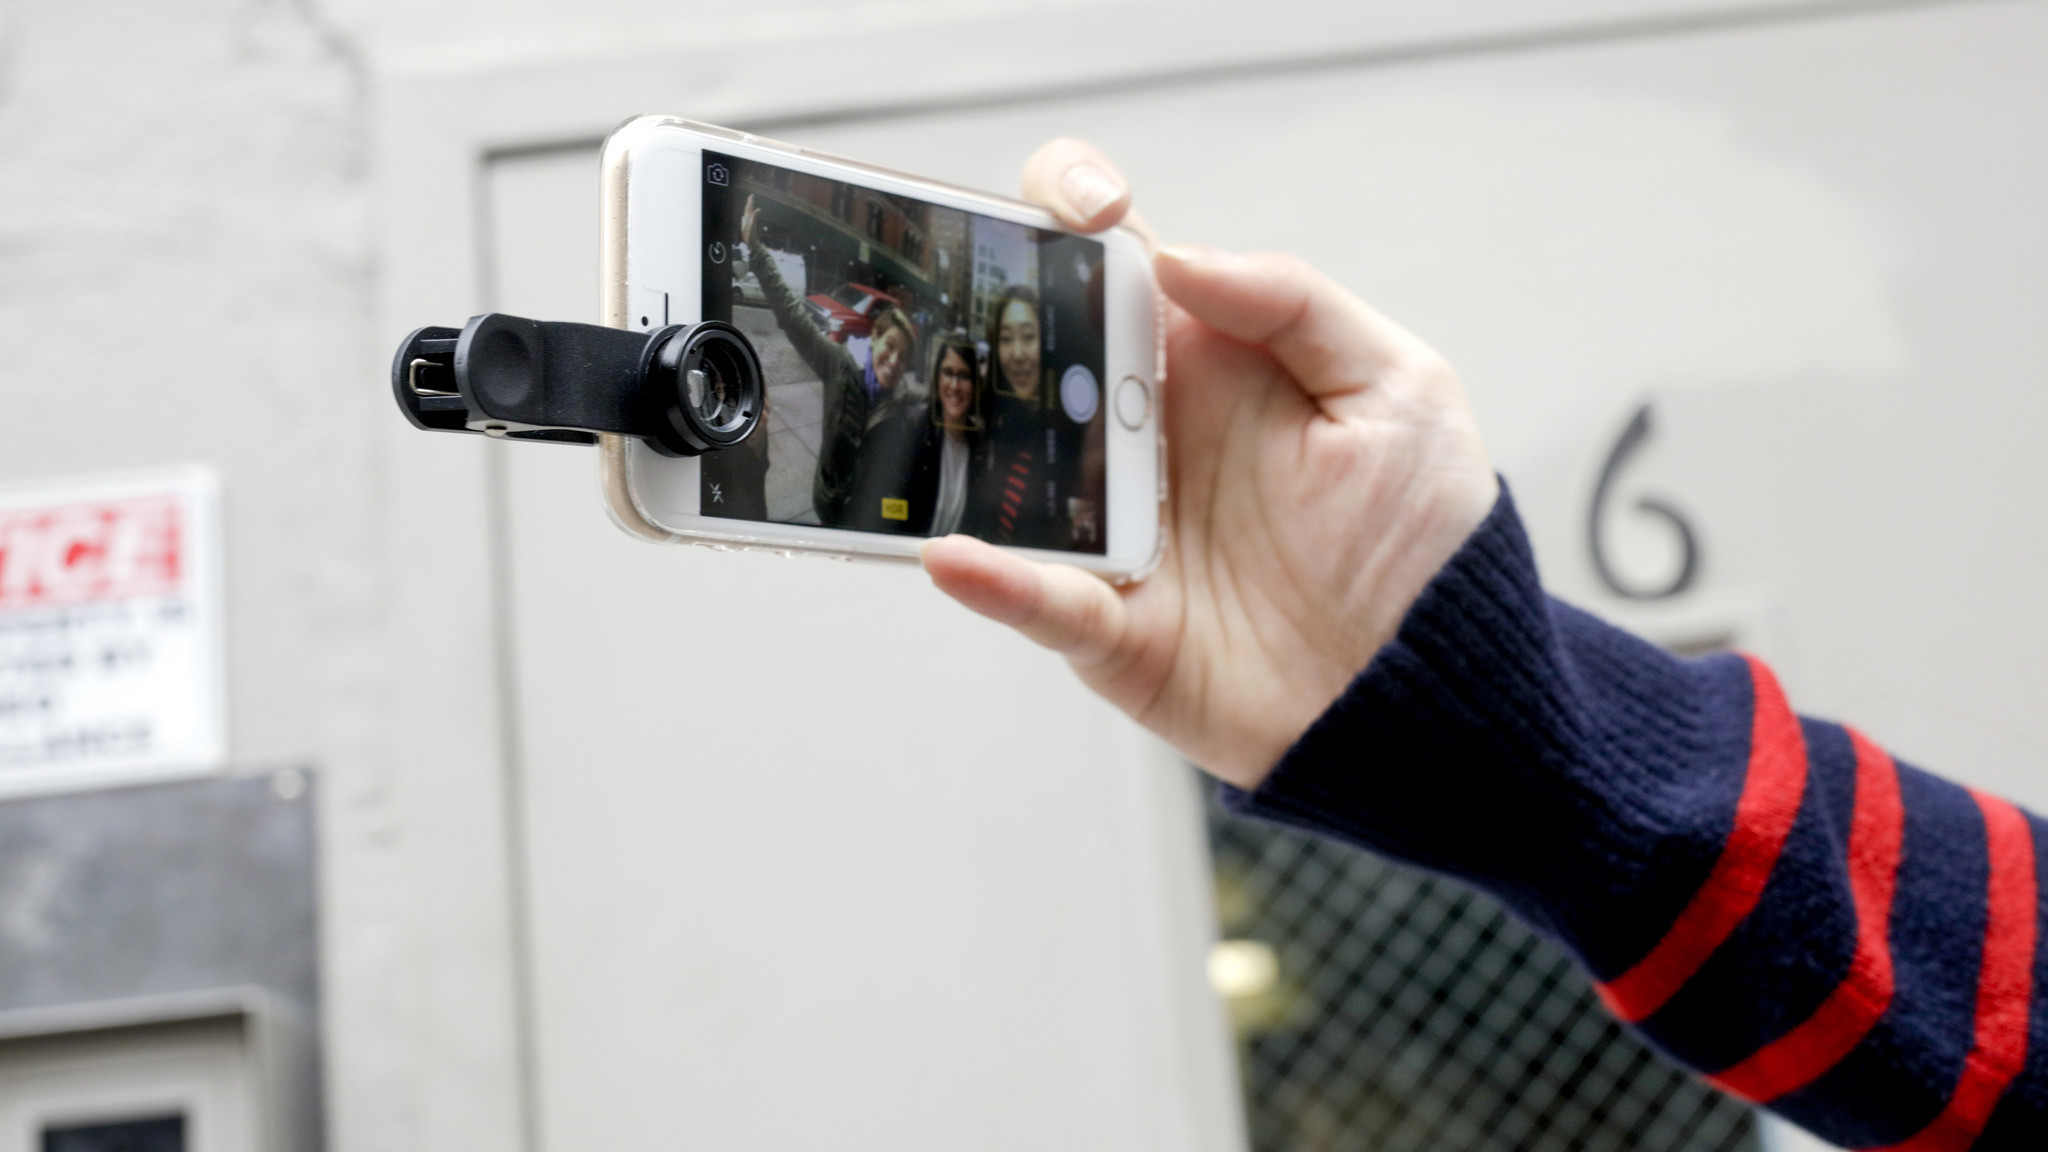 Phone camera lenses Adding accessories is a thrifty way to upgrade your smartphone. This kit carries